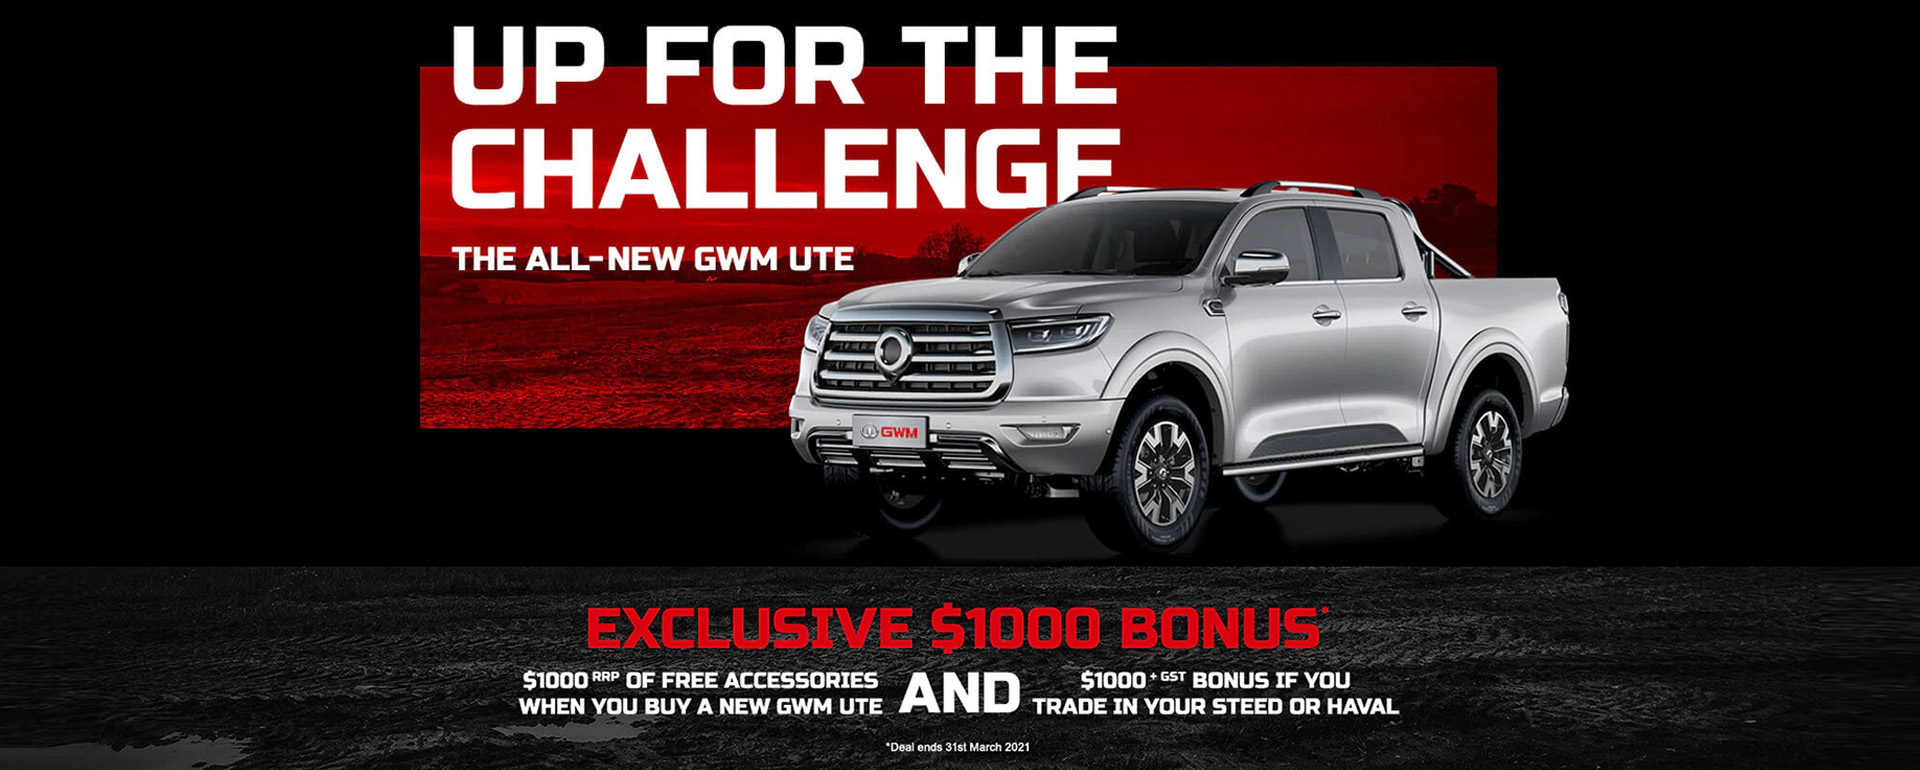 UP FOR THE CHALLENGE - THE ALL NEW GWM UTE: Exclusive $1000 Bonus